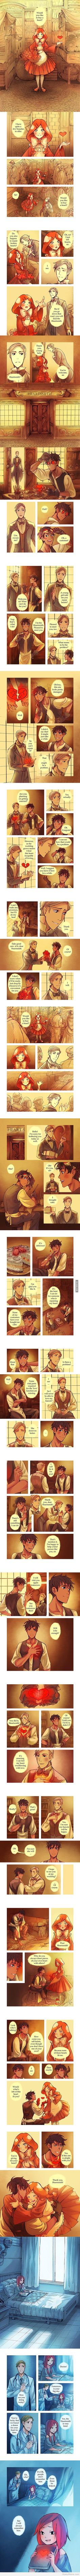 The Heartsmith comic. So cute! --> The Heartsmith looks like Percy Jackson with Leo's skin color and personality. Kind of sad when I think about it because I can see Leo doing something like this. Cute Stories, Short Stories, Beste Comics, Online Comics, Online Art, Mini Comic, Short Comics, Plot Twist, Faith In Humanity